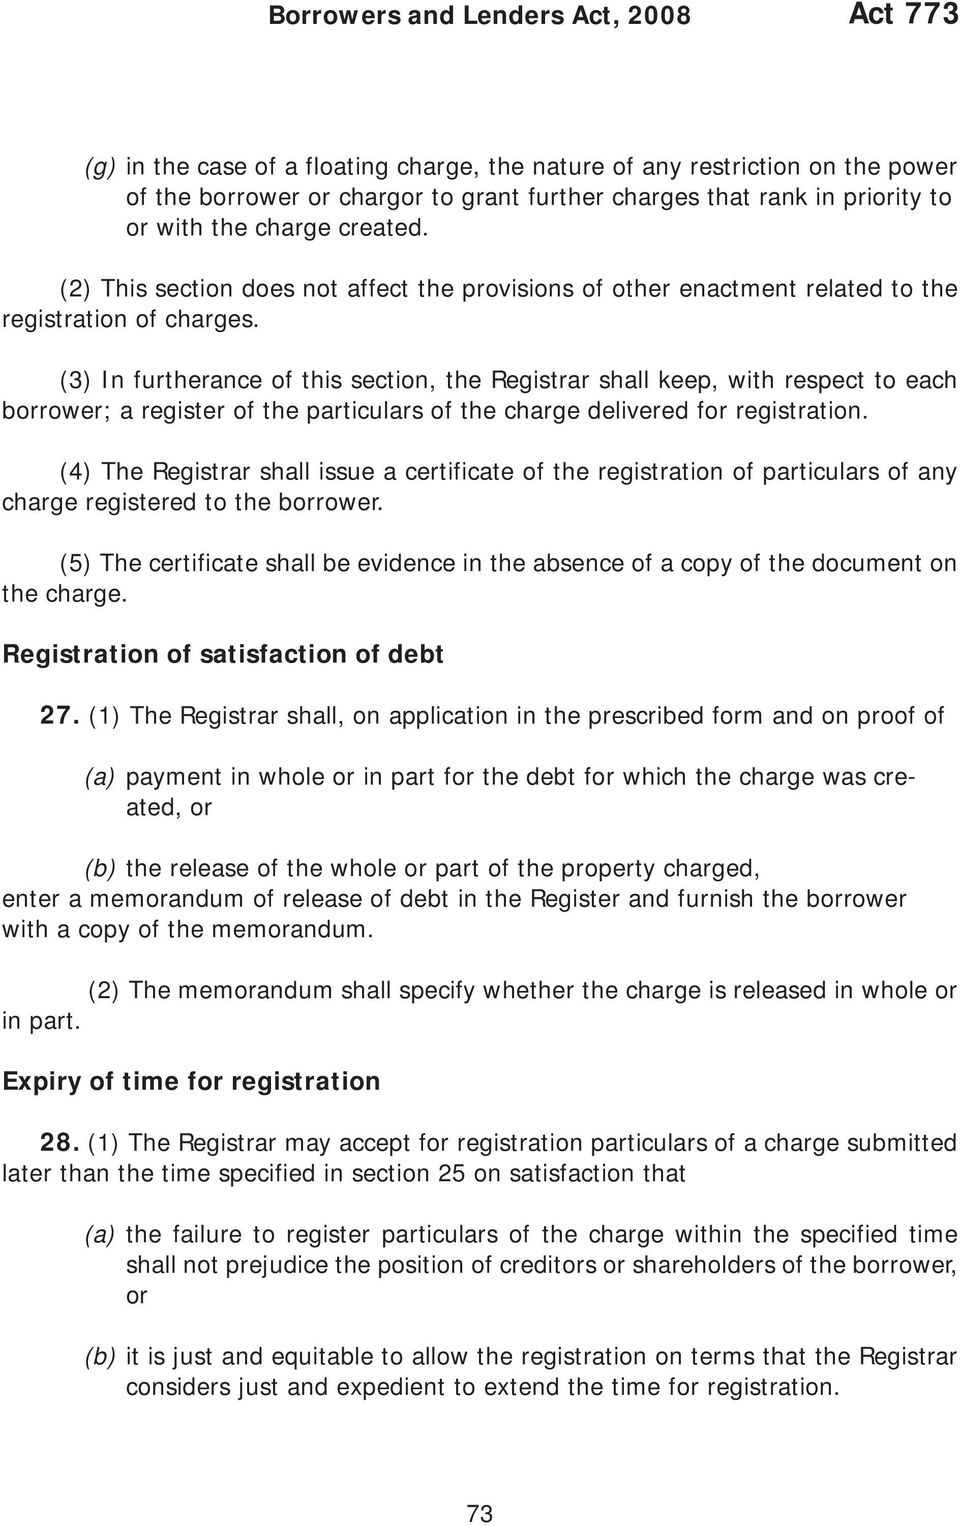 (3) In furtherance of this section, the Registrar shall keep, with respect to each borrower; a register of the particulars of the charge delivered for registration.